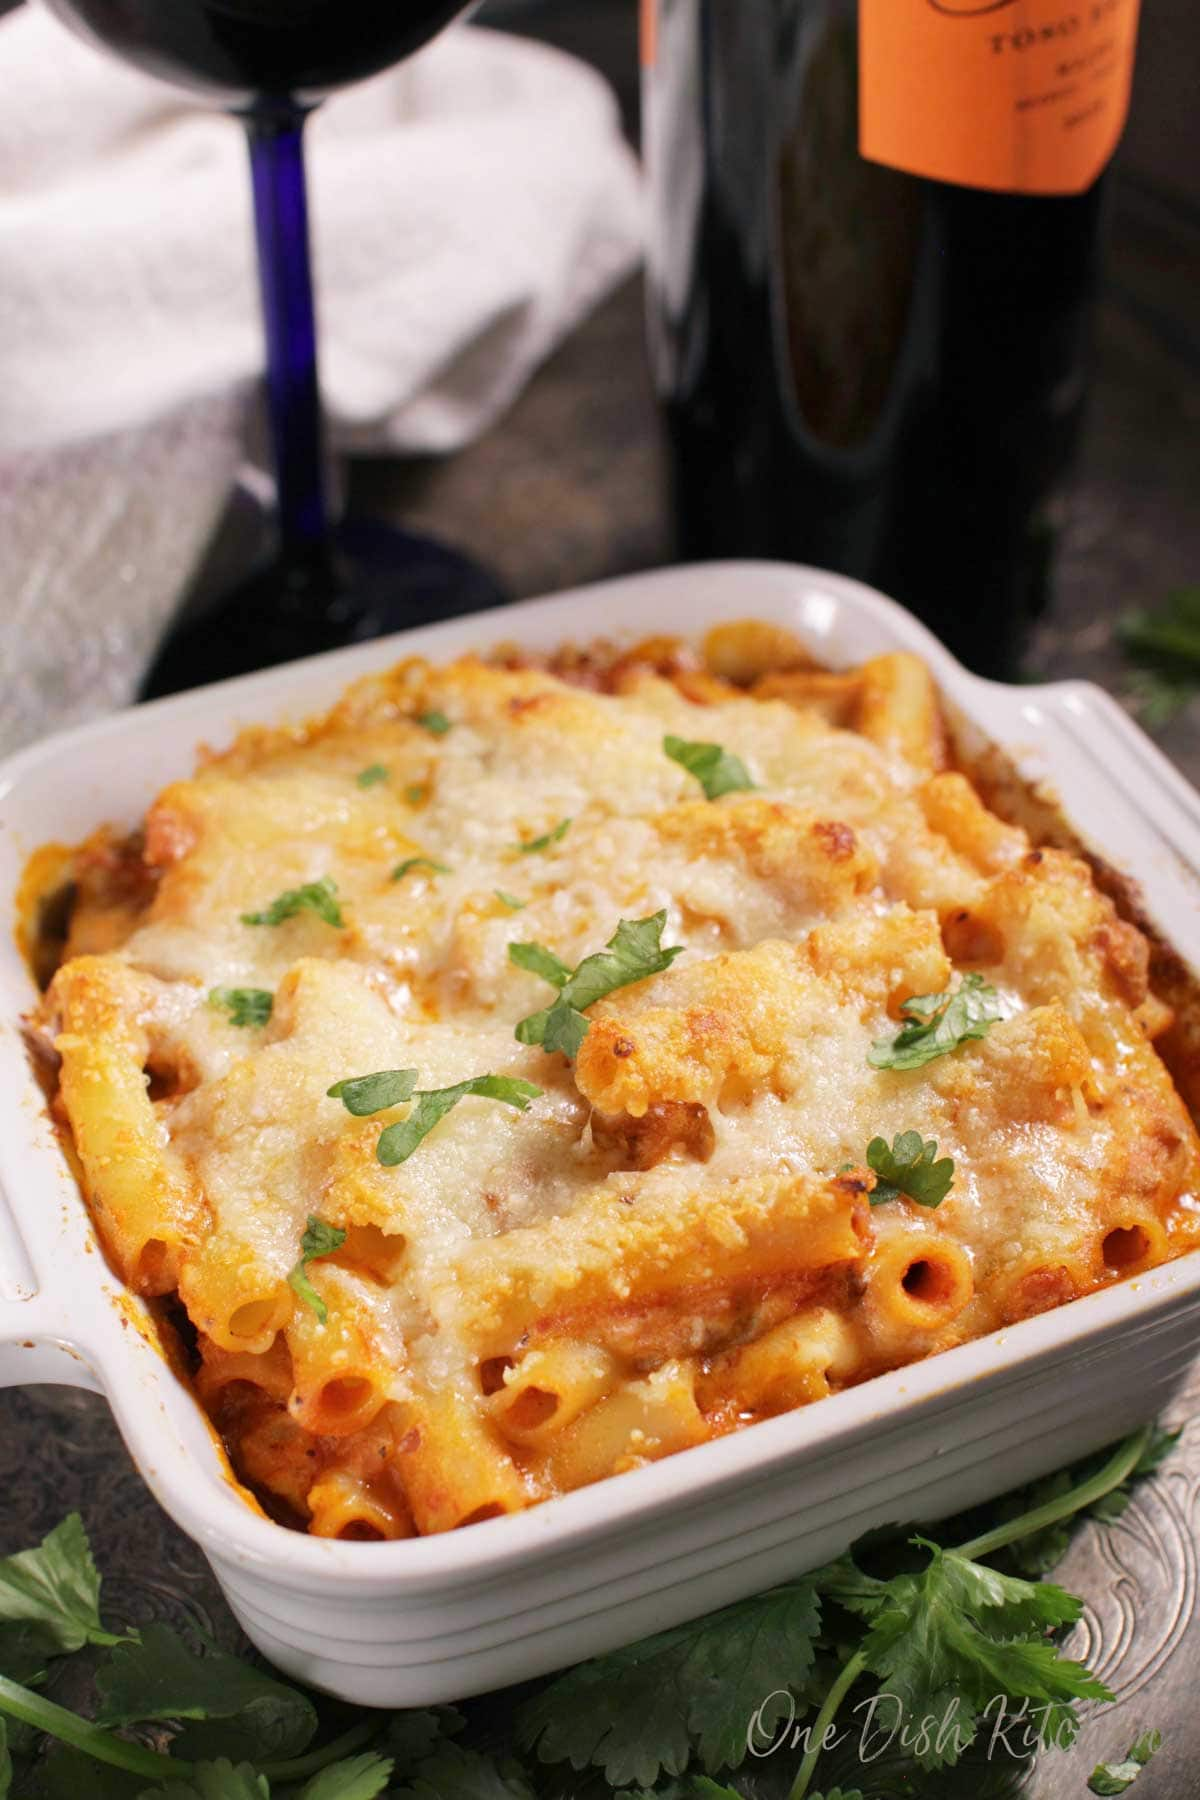 Baked ziti topped with melted mozzarella cheese in a small baking dish garnished with parsley on a metal tray with a glass and a bottle of red wine